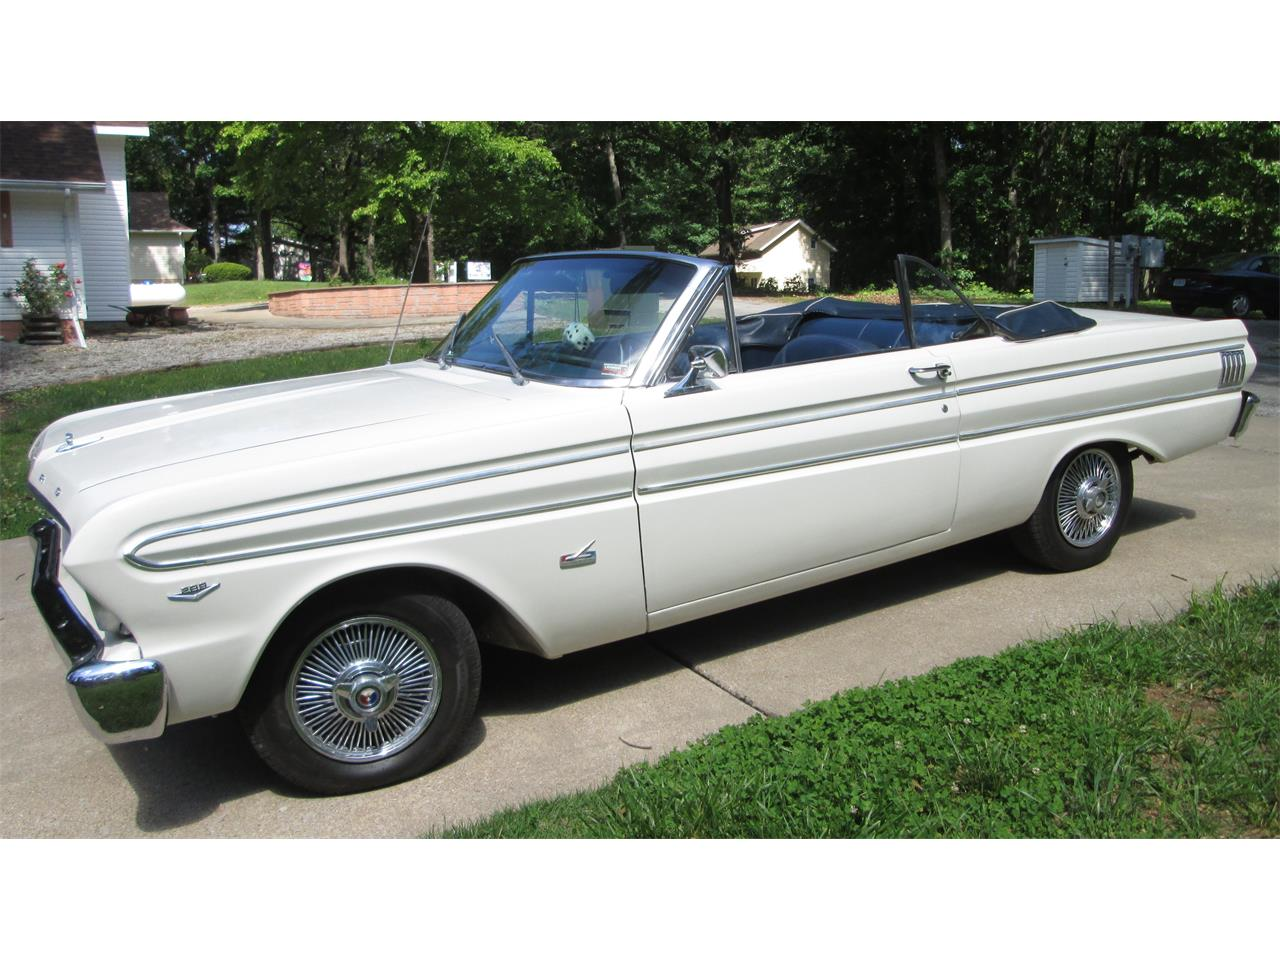 Large Picture of Classic 1964 Ford Falcon located in Kimberling City Missouri Offered by a Private Seller - Q4YA